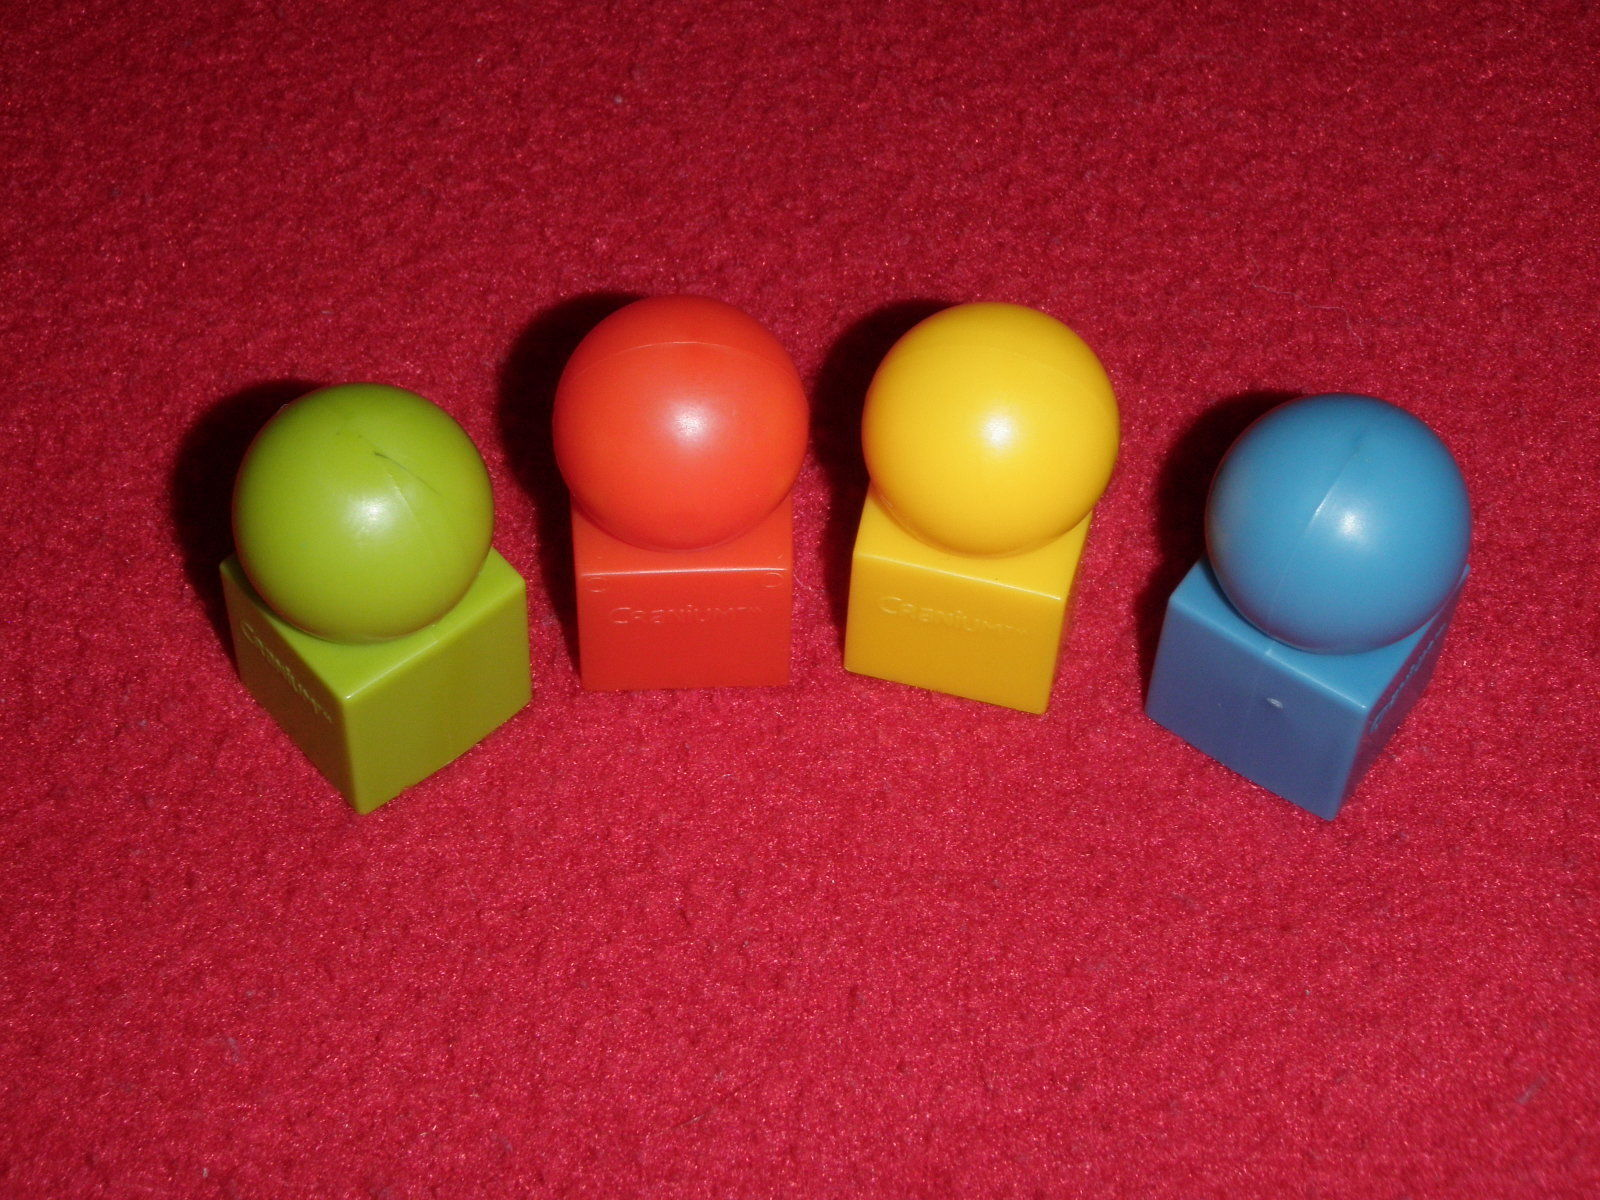 Primary image for 2008 Cranium Board Game Replacement 4 Movers Pieces Red Yellow Blue Green ONLY